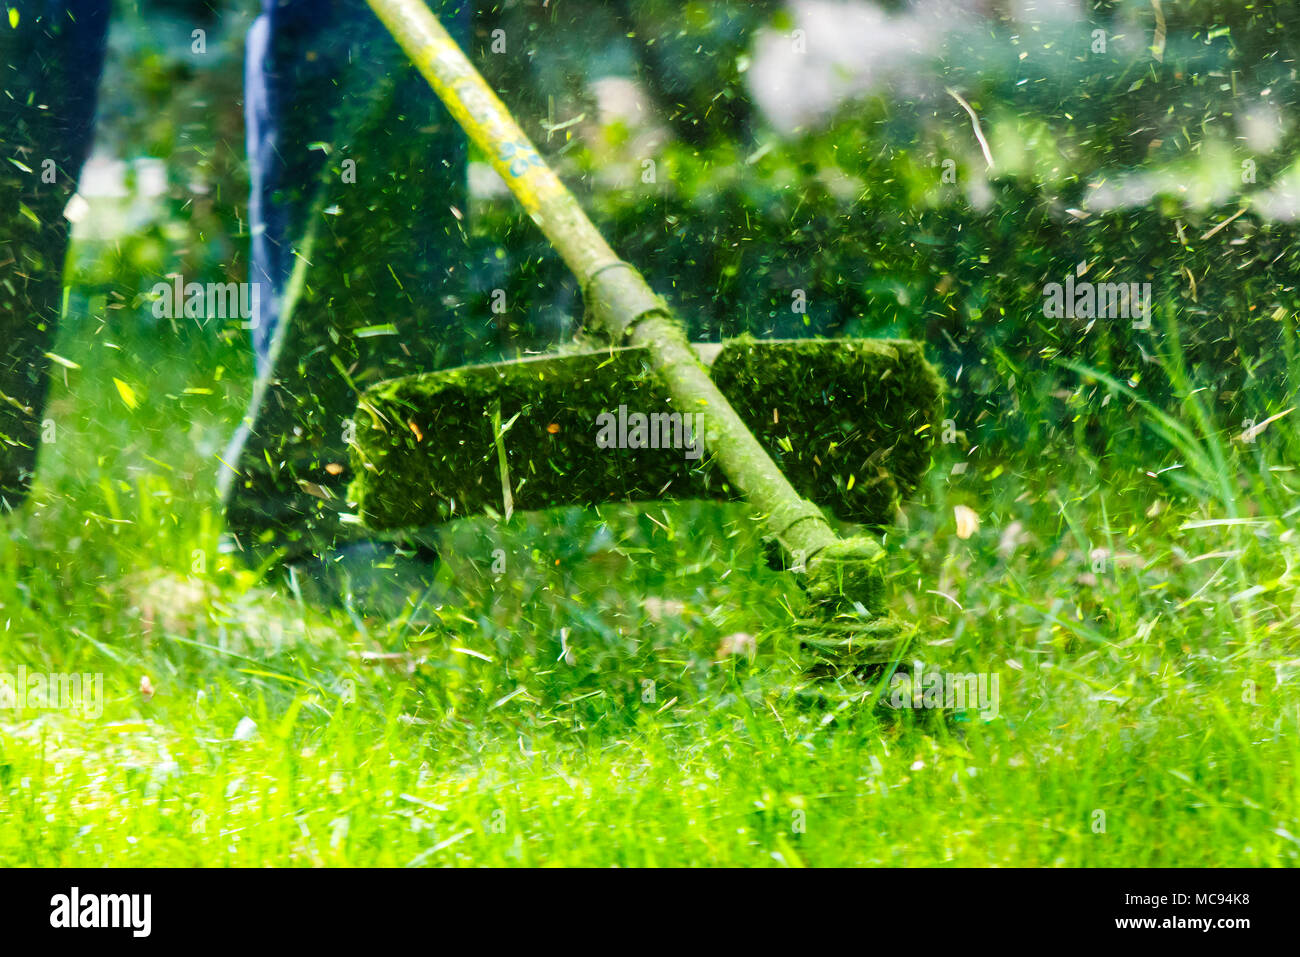 grass cutting in the garden with trimmer. lovely nature background - Stock Image